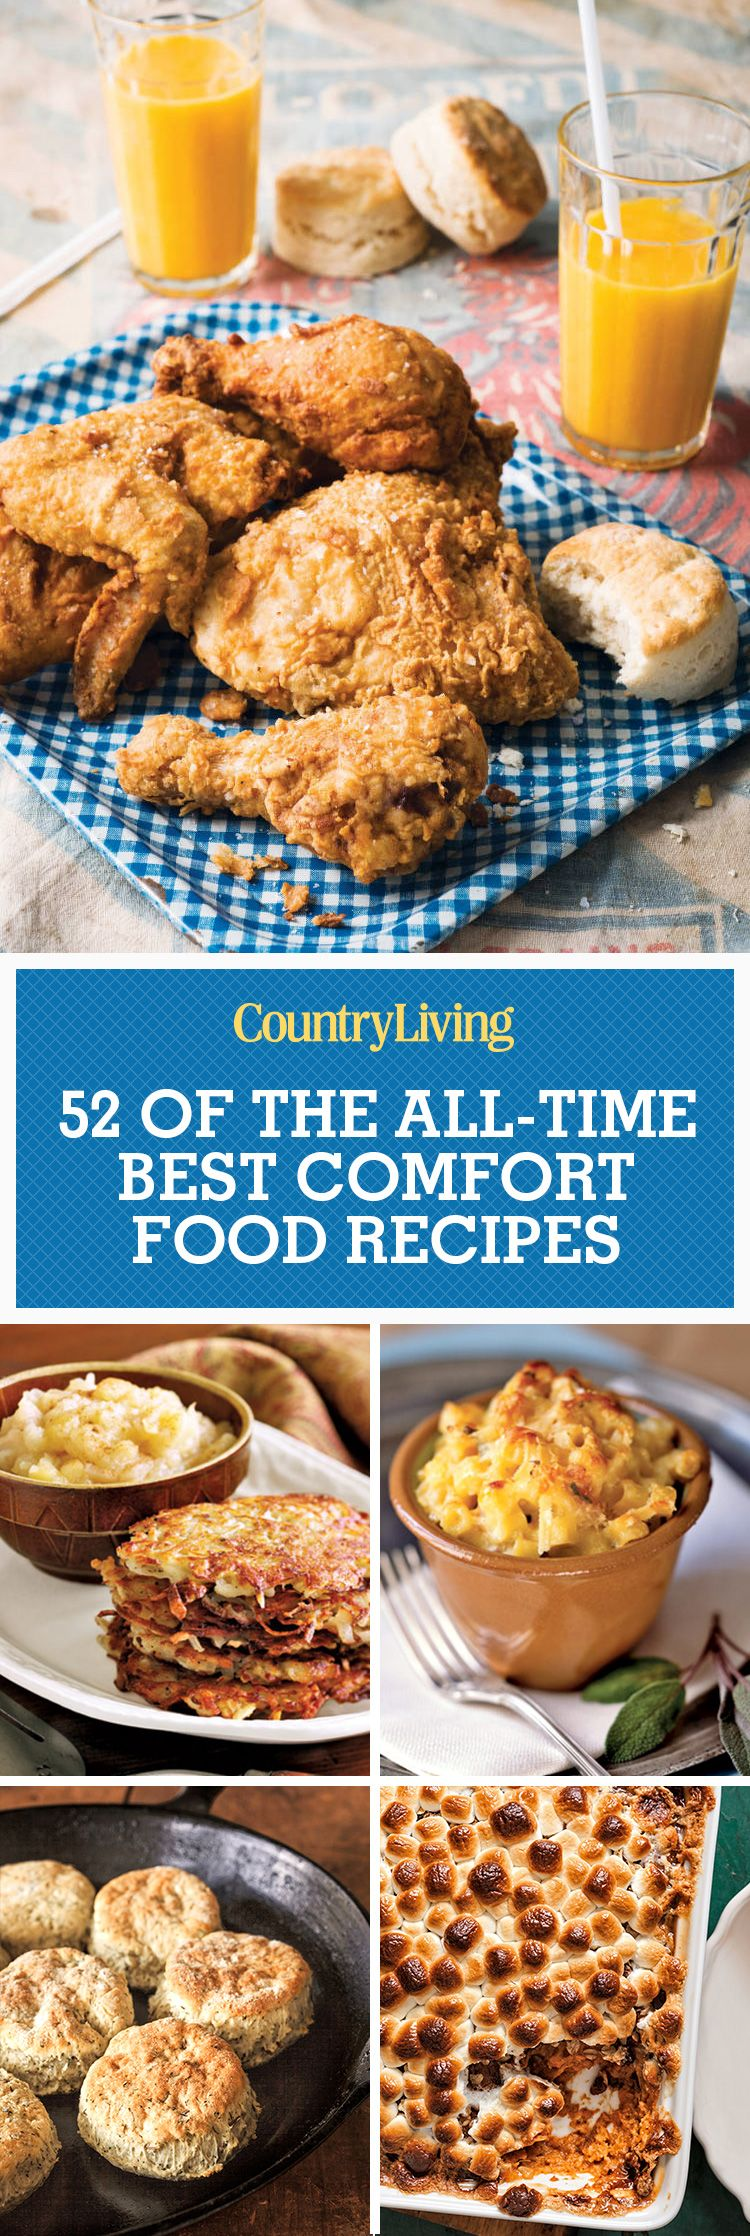 55 easy comfort food recipes - best southern comfort food ideas